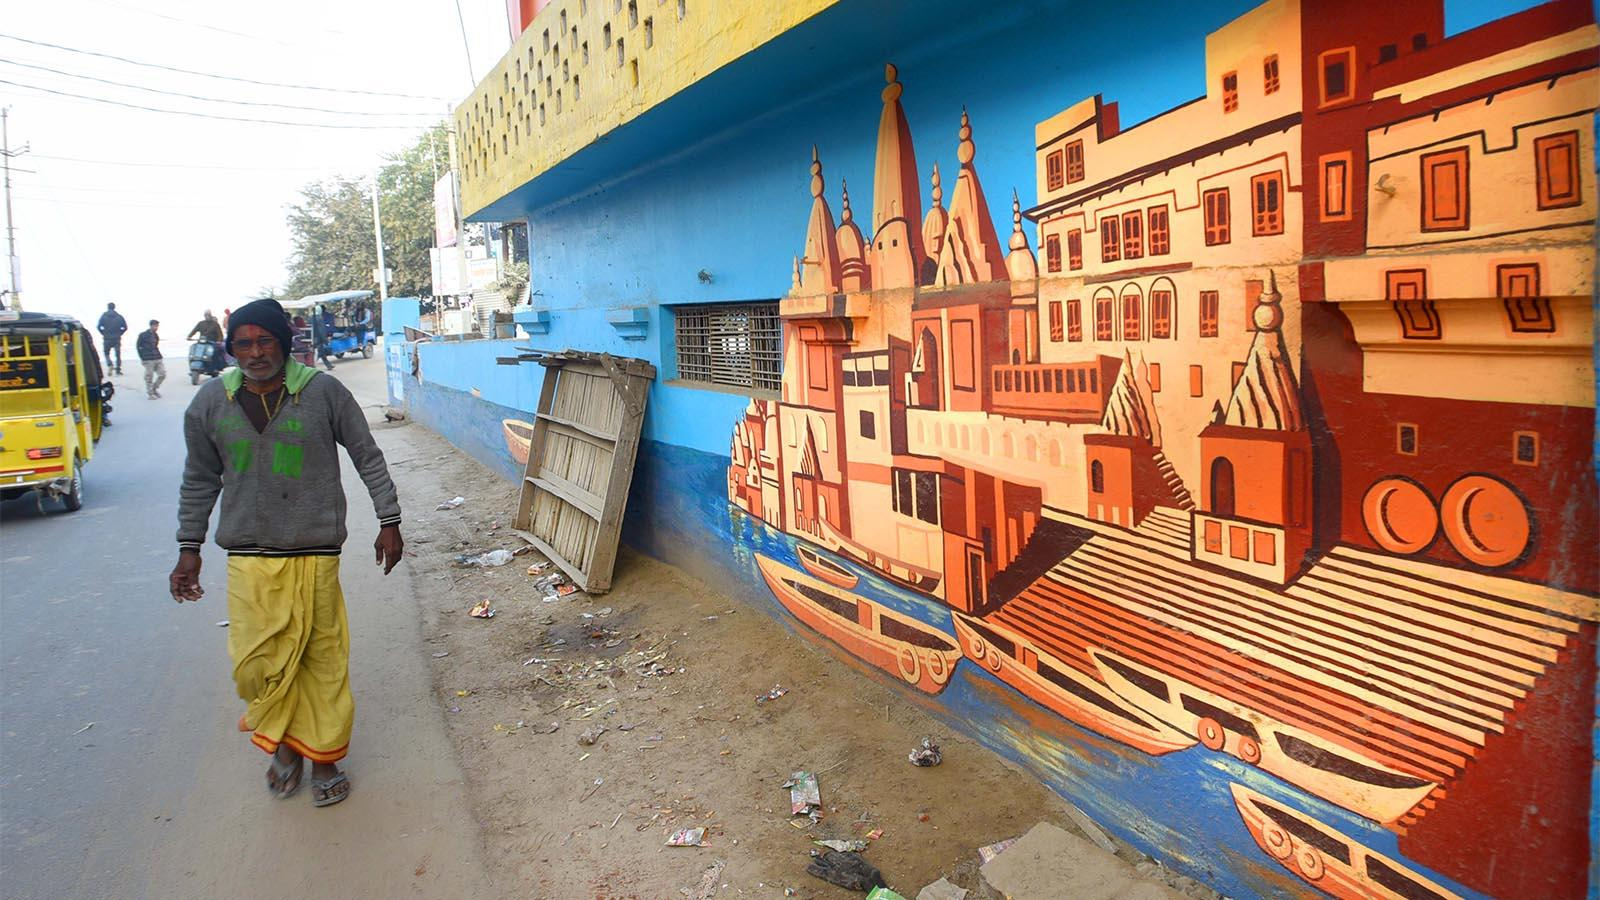 Streets come alive with art in Prayagraj